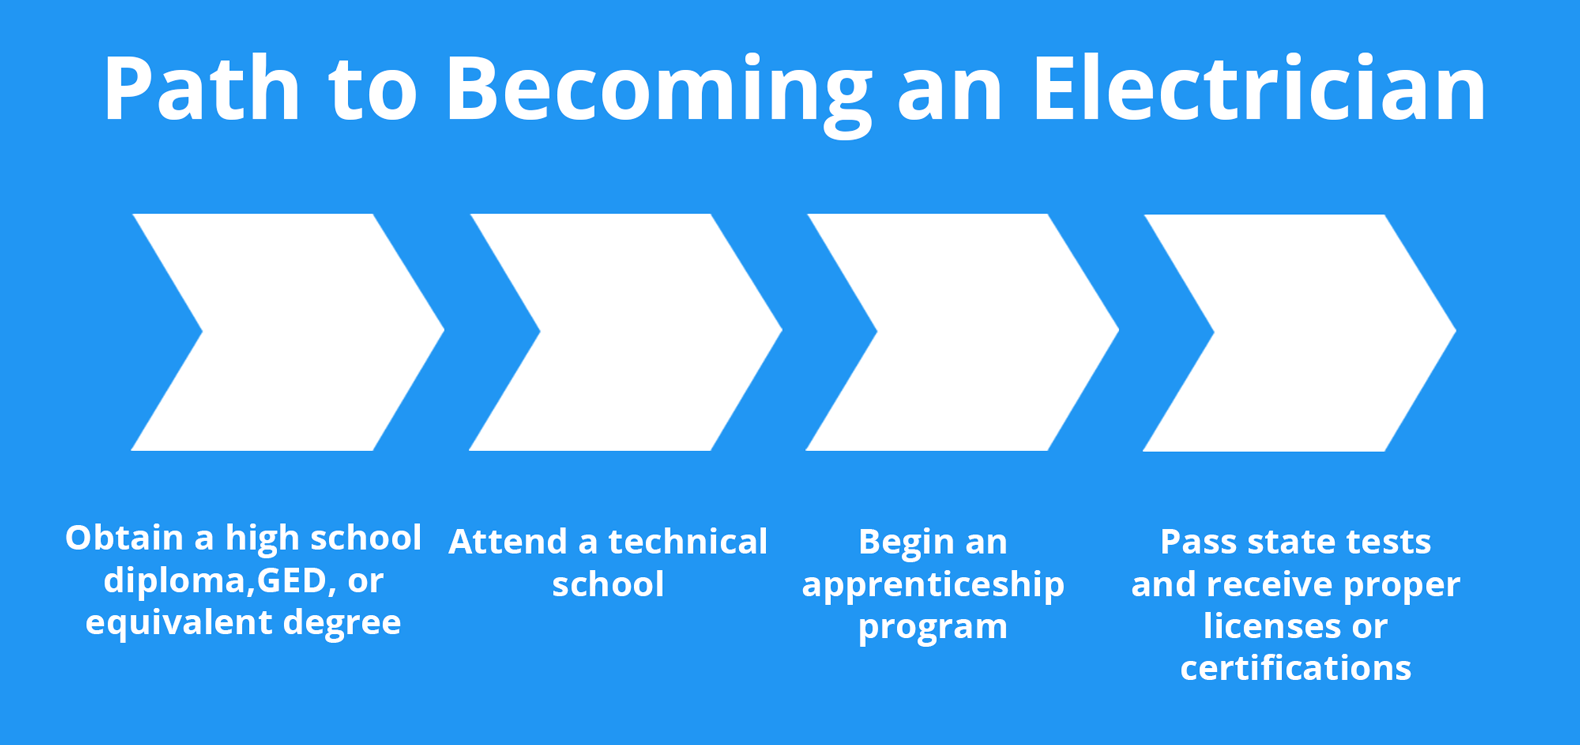 Path to Becoming an Electrician